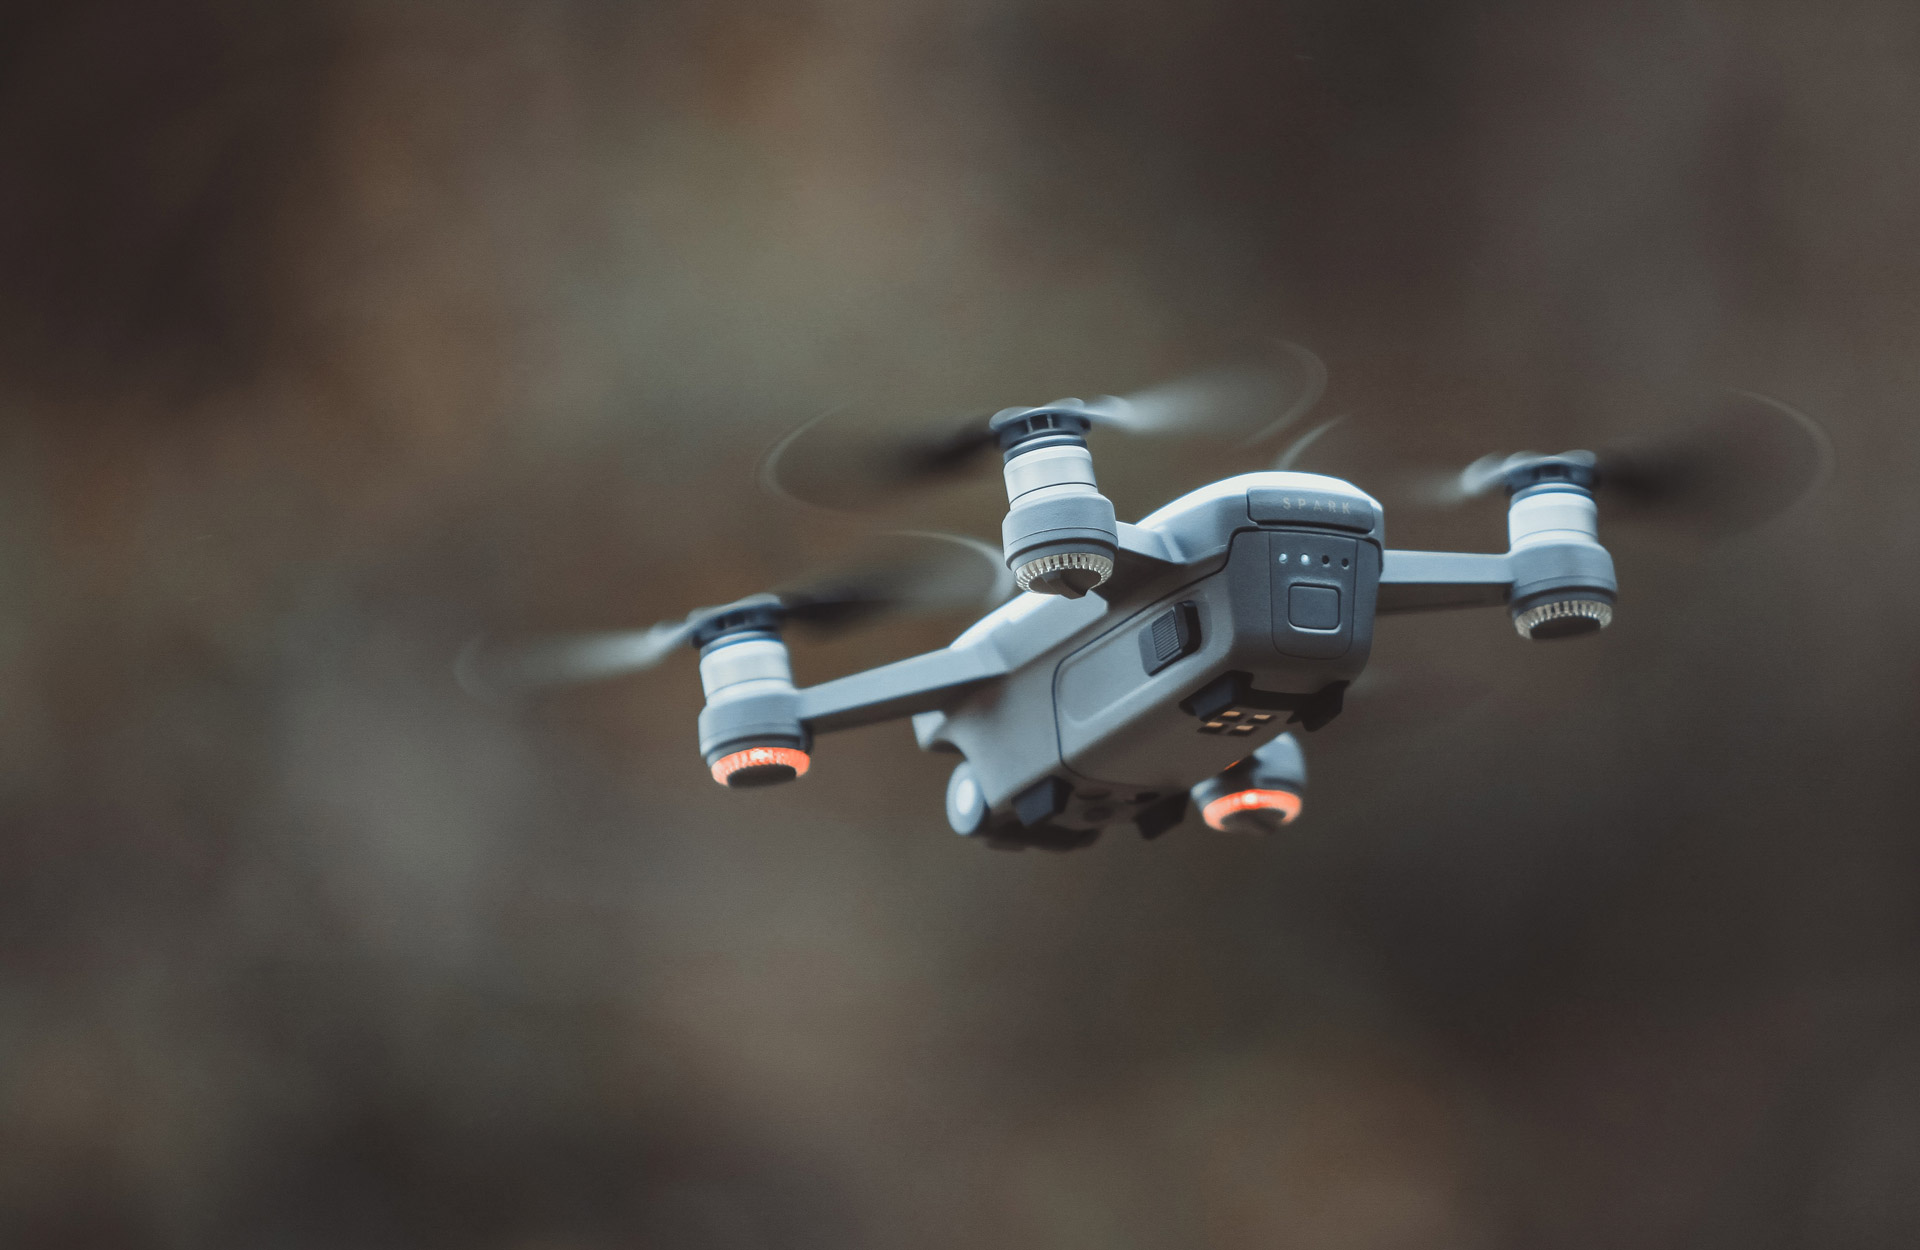 A grey drone flies outdoors.